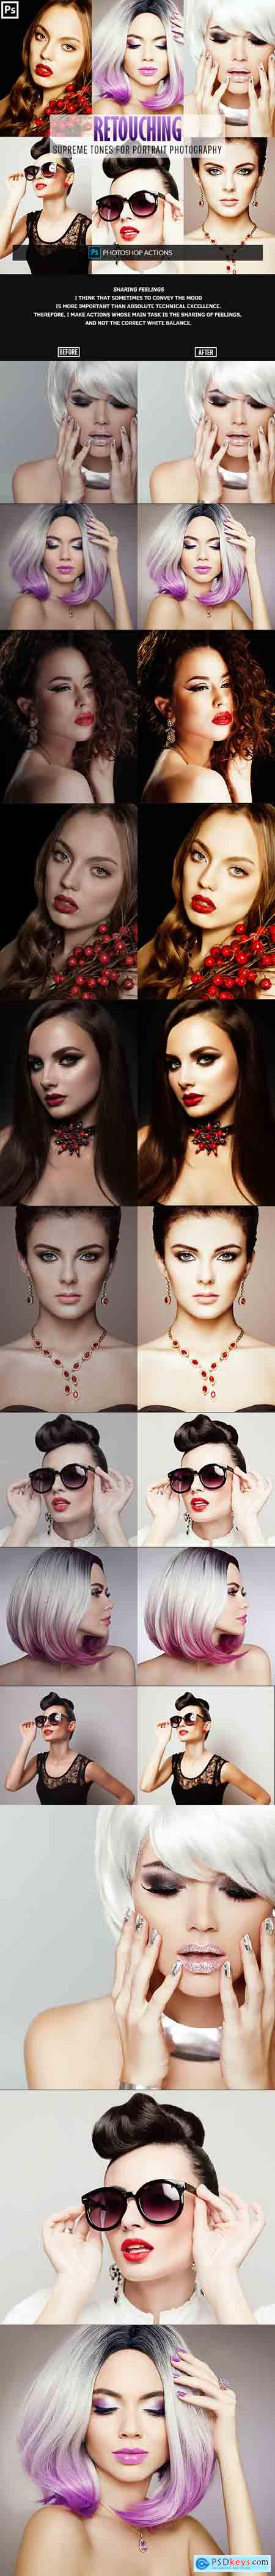 Retouching » Free Download Photoshop Vector Stock image Via